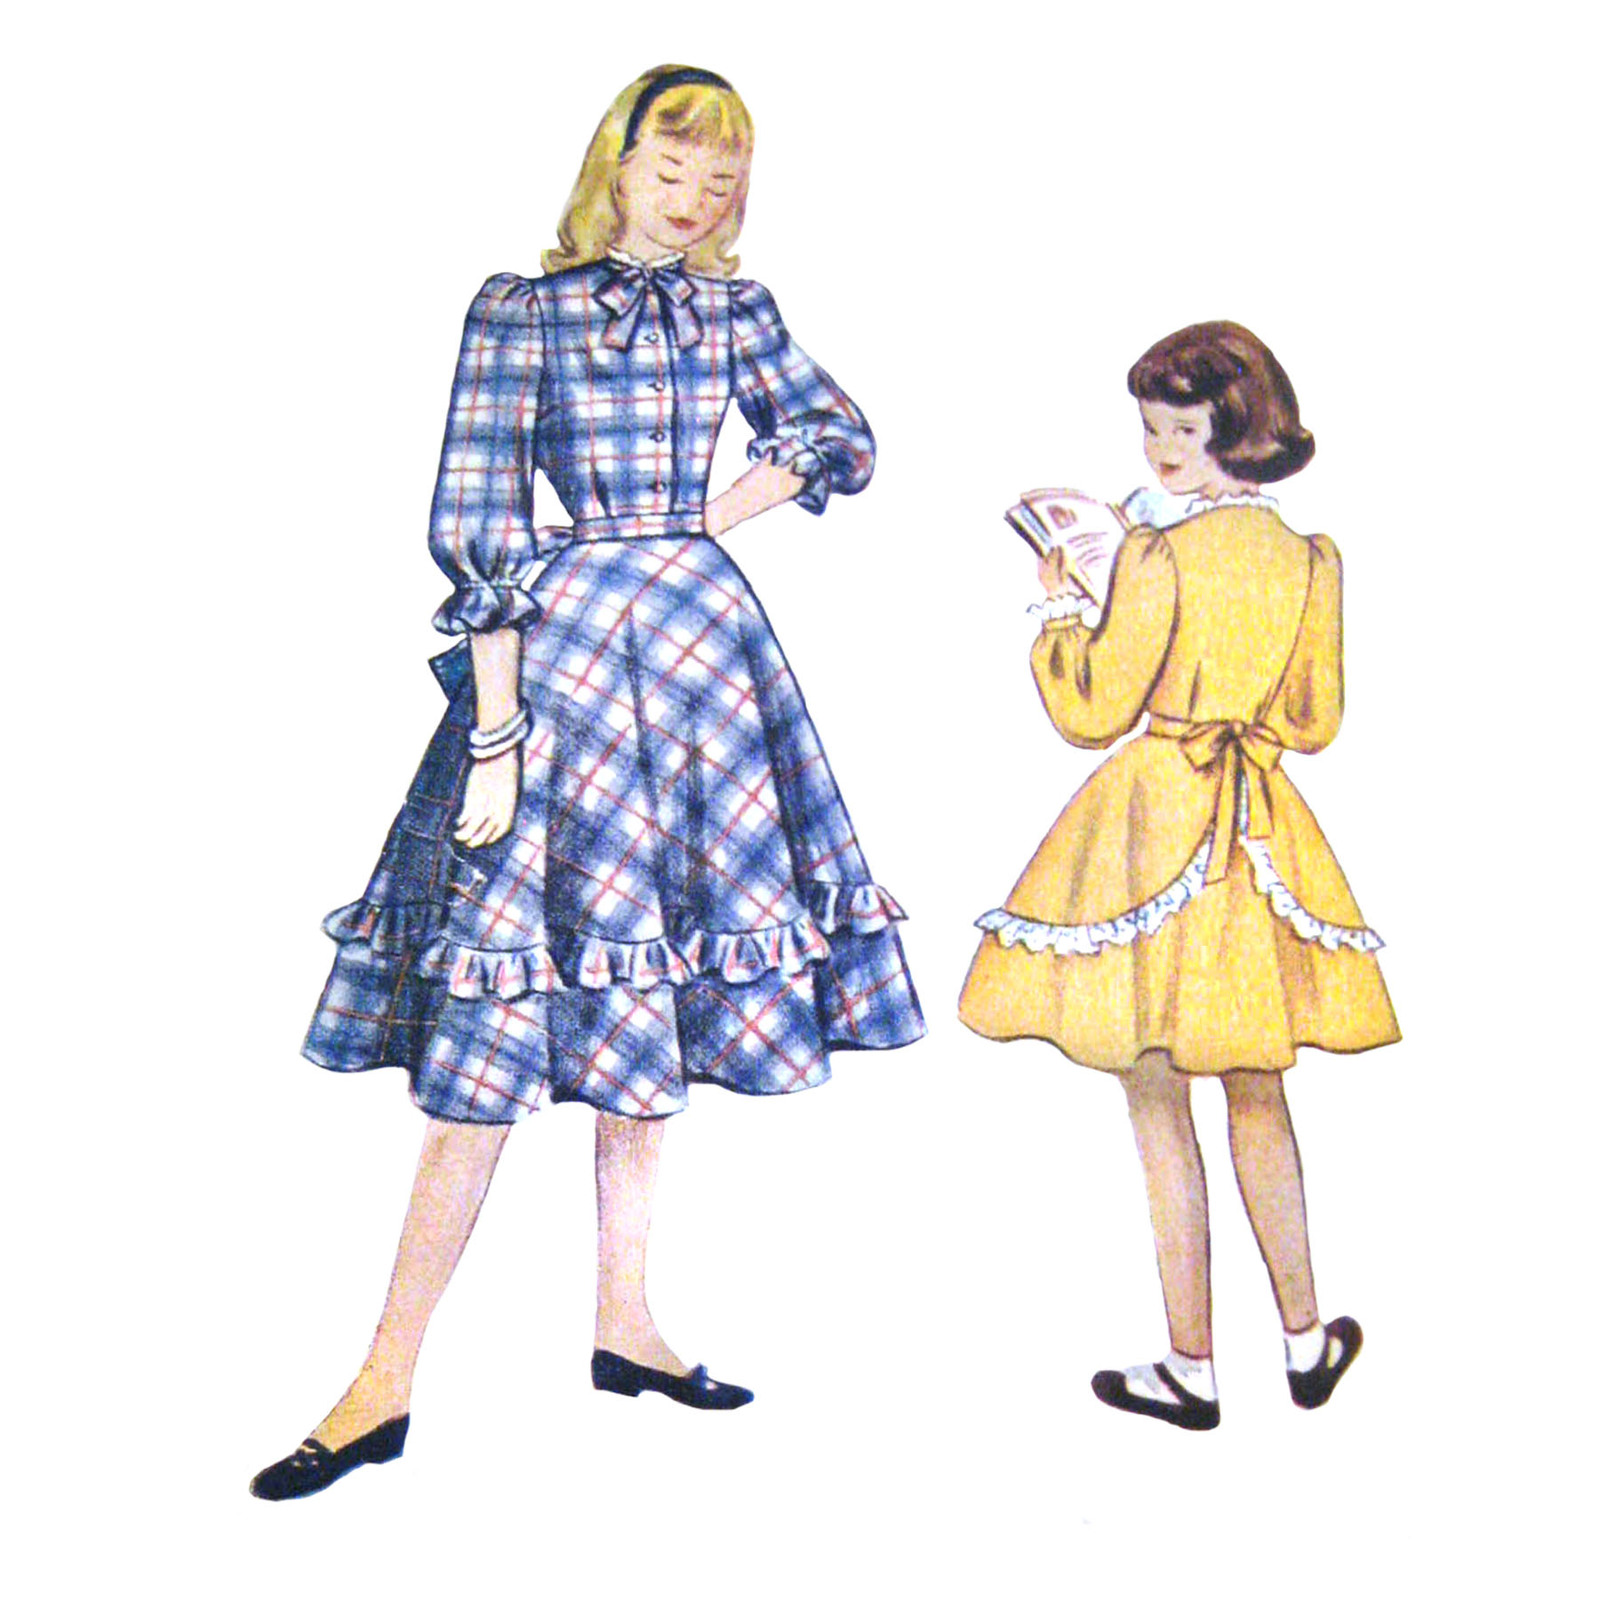 cb905bf3c2df7 Vintage 40s Simplicity 2650 Girls Dress Long and 50 similar items. S 2650